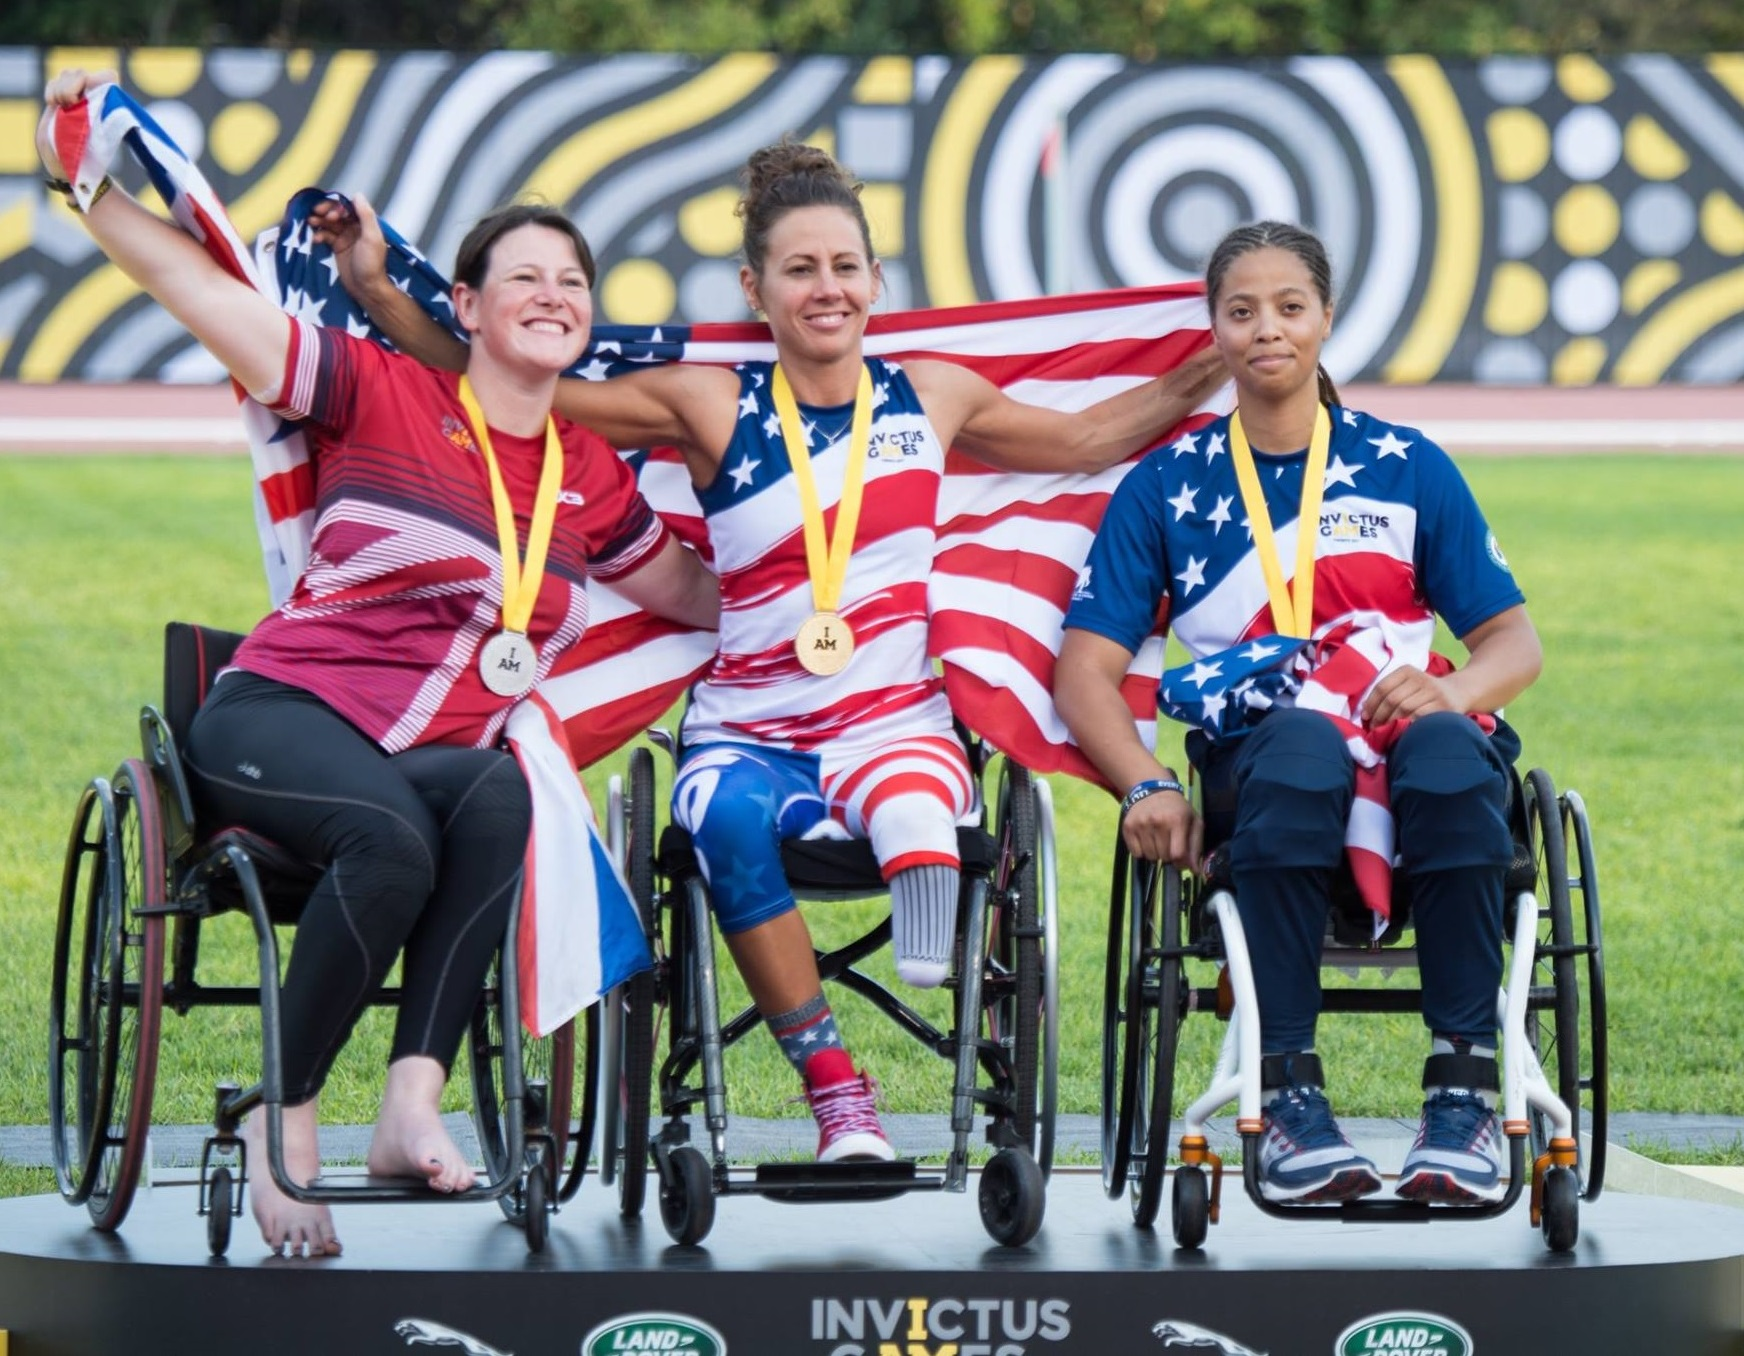 Three American woman on Invictus games podium wearing gold, silver and bronze medals